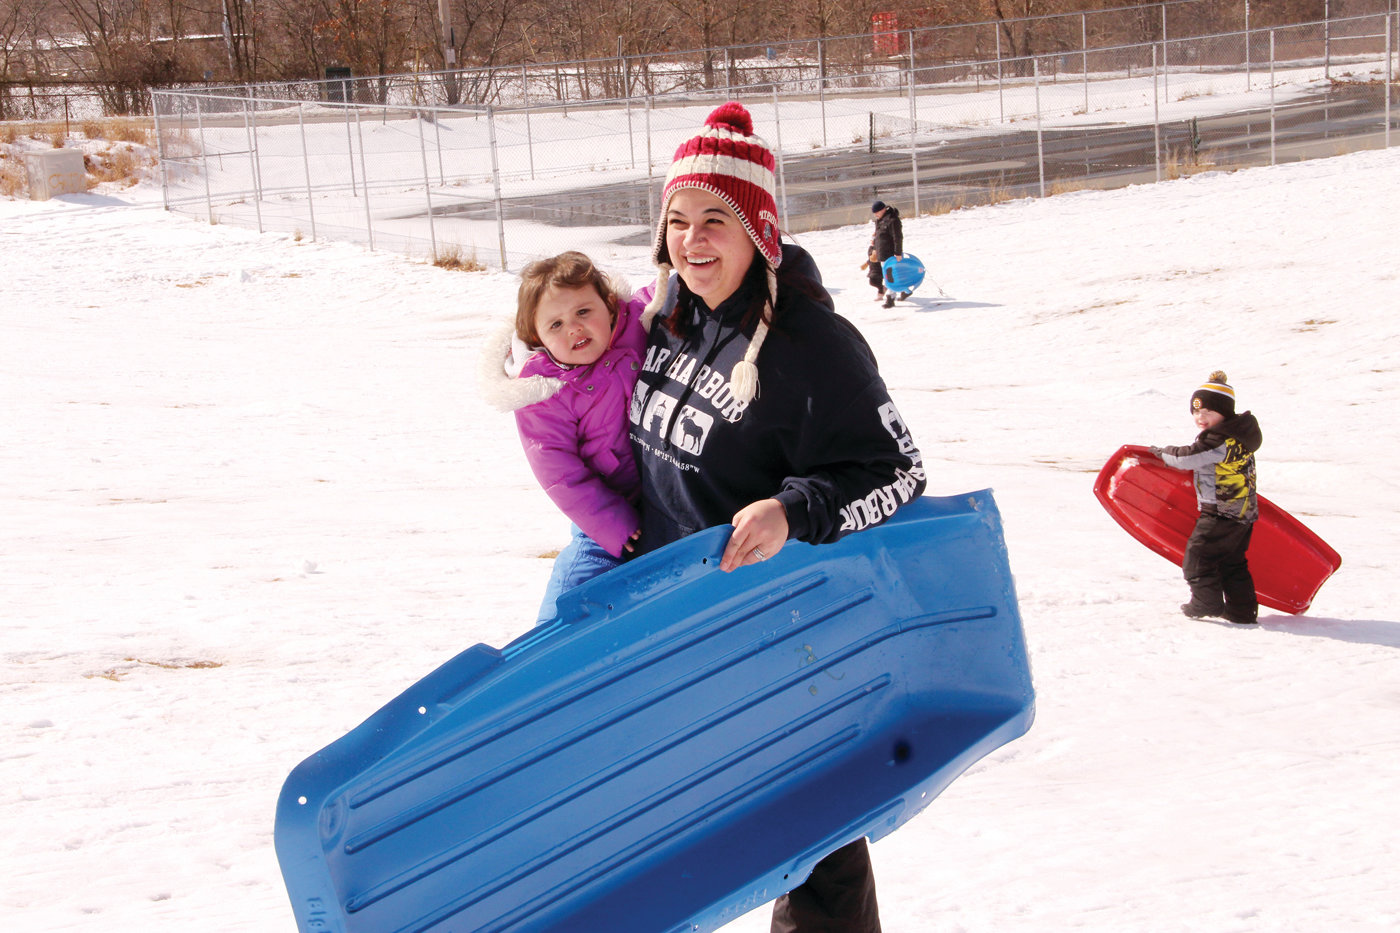 MOM GETS TO CARRY: Lindsay Murray carried both the sled and her daughter Karoline.